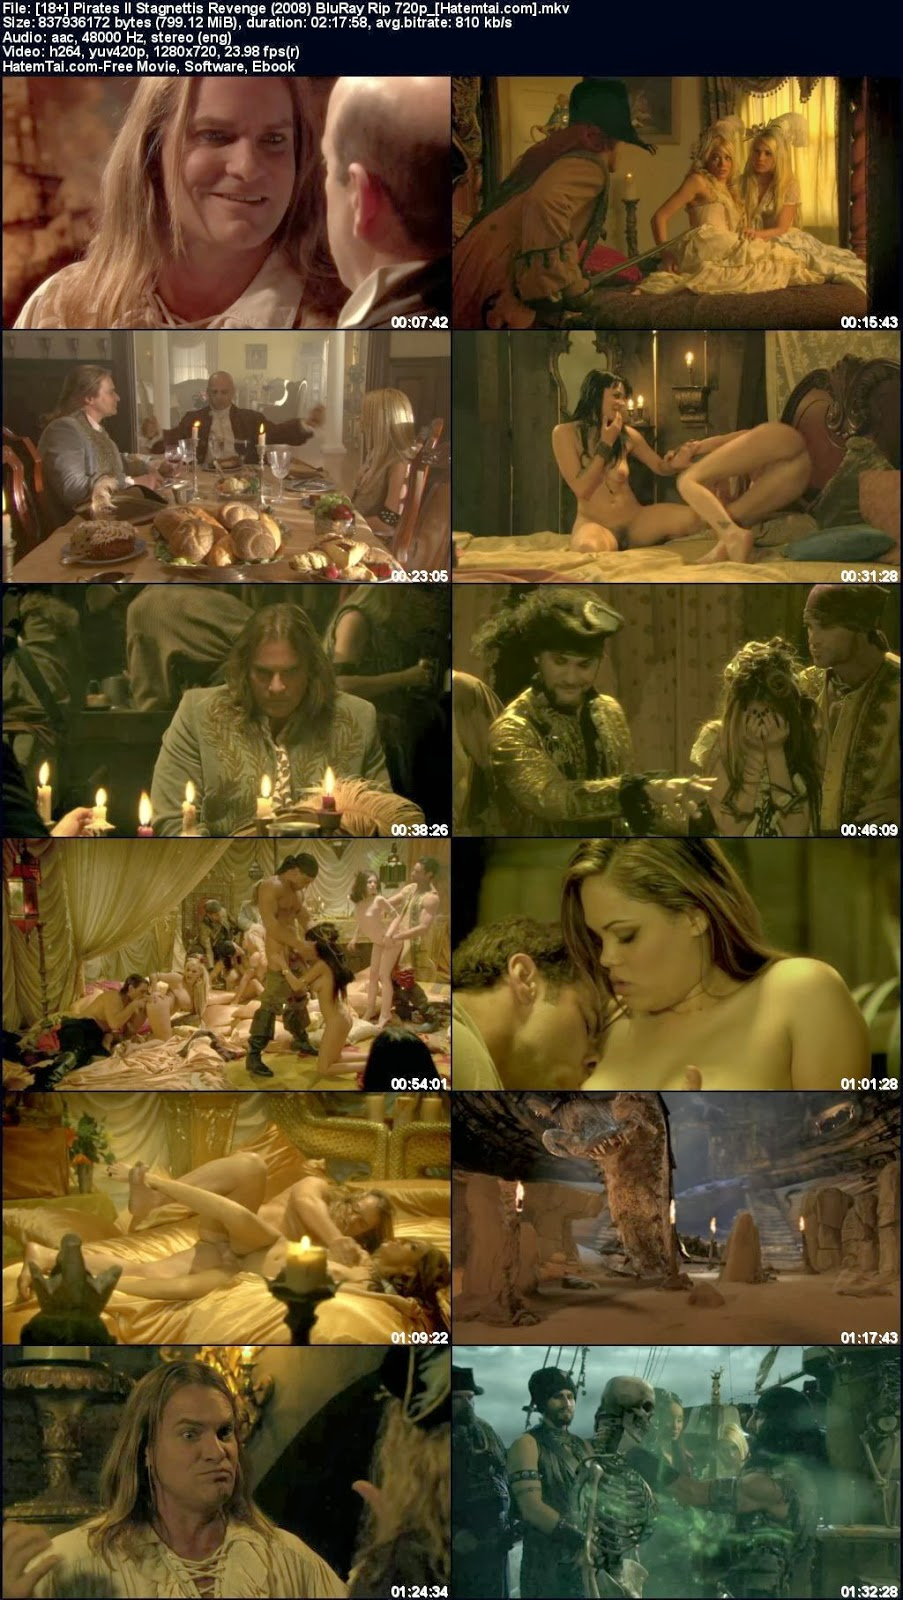 Free download of pirates porn movie erotic beauty pornostar